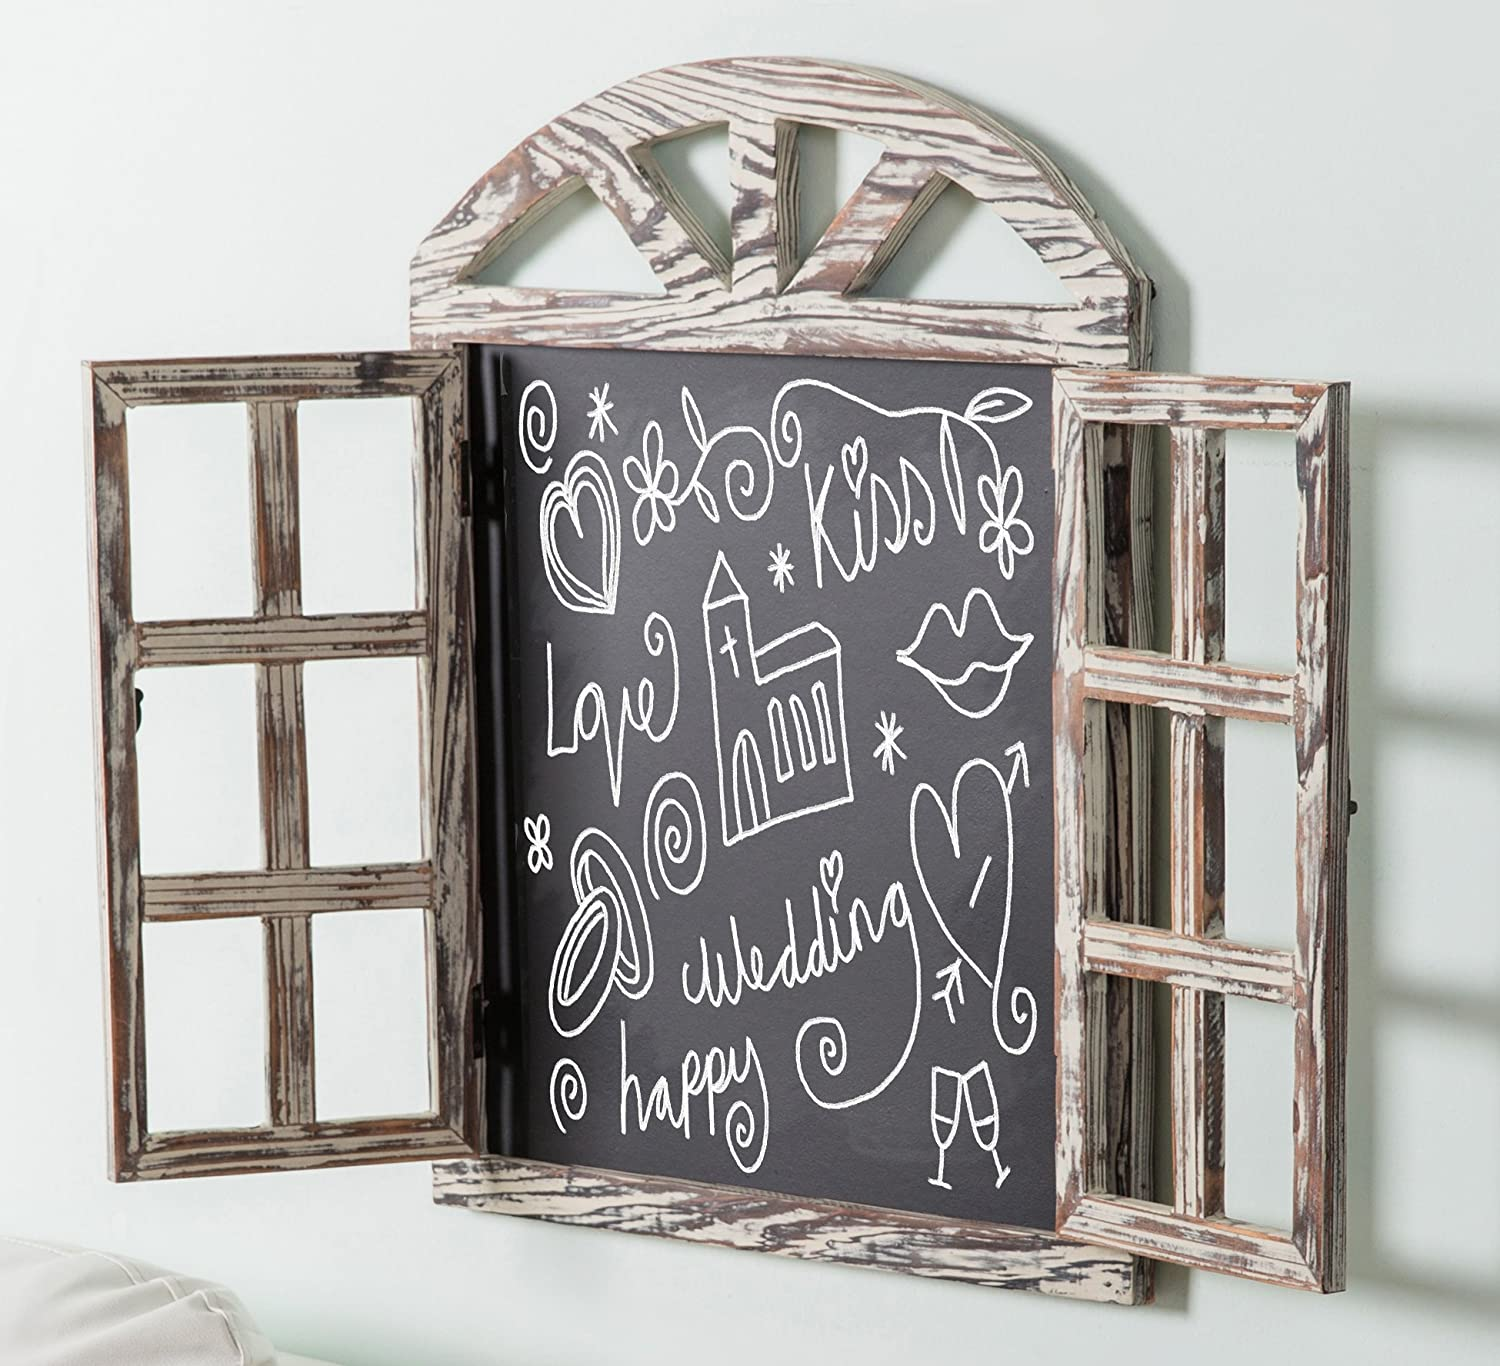 Wall Mounted Whitewashed Brown Wood Windowpane Design Chalkboard Sign with Folding Shutter Doors MyGift BHBUKPPAZINH1520